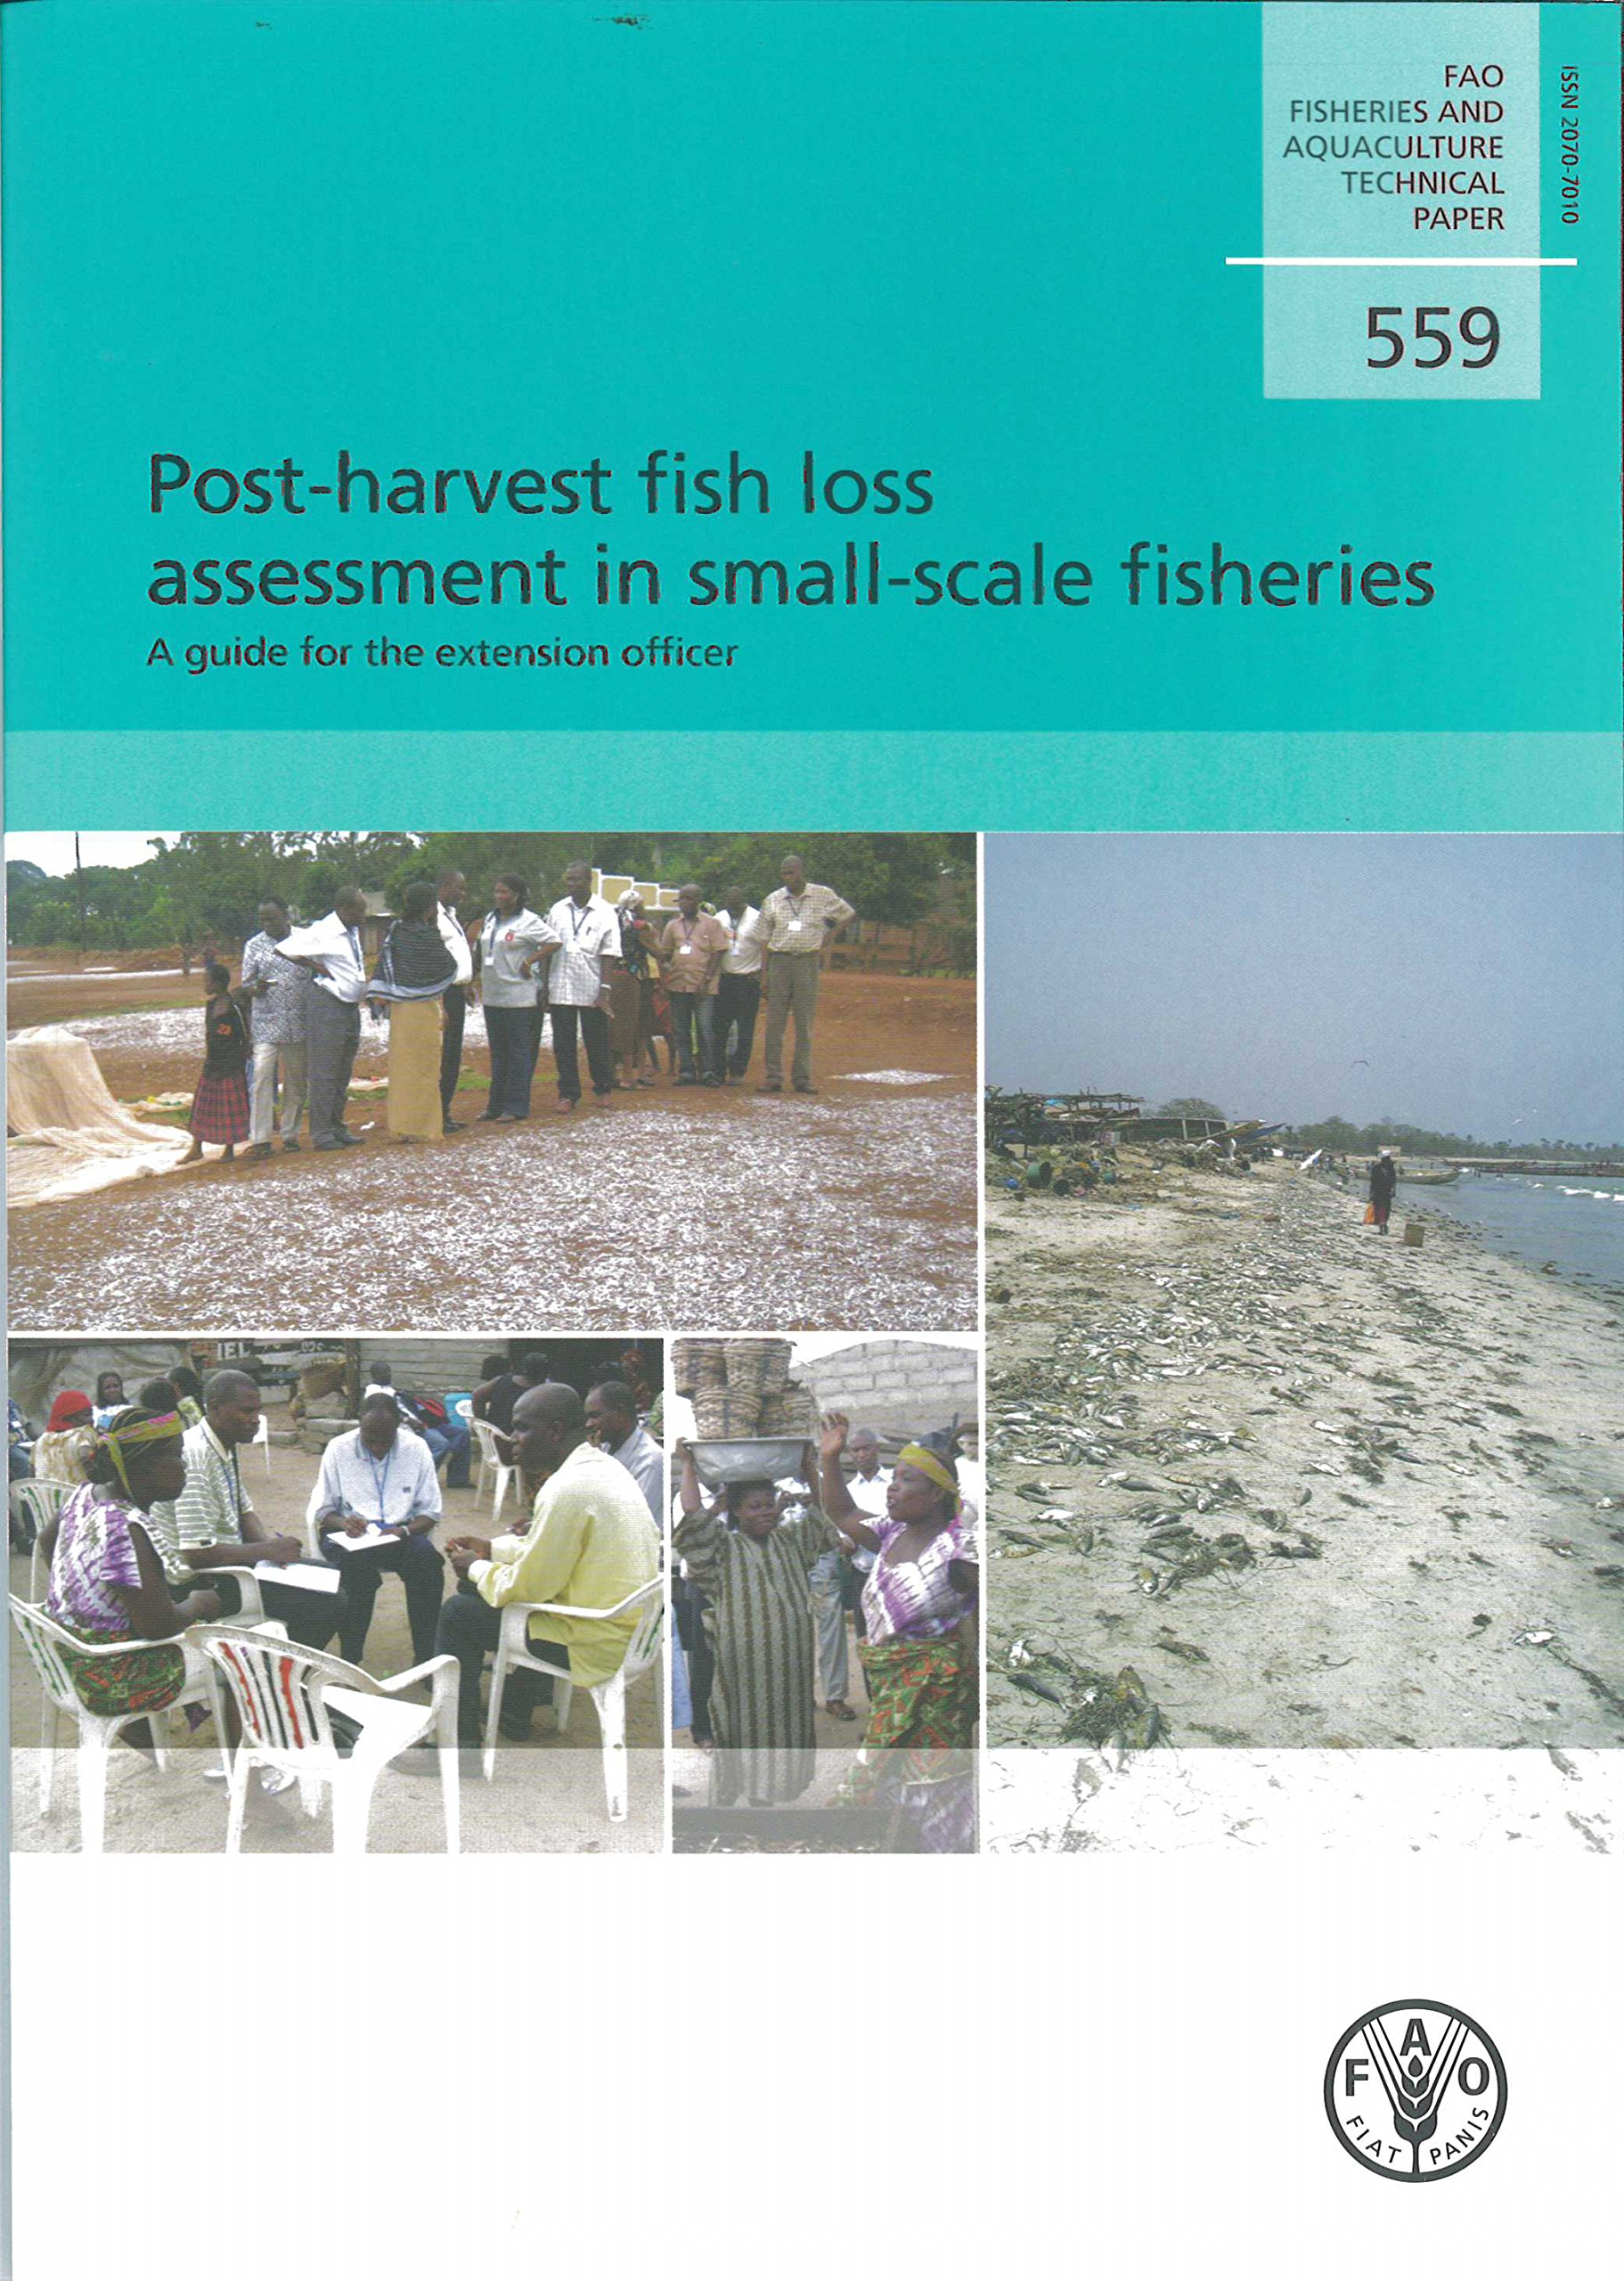 Post-Harvest Fish Loss Assessment In Small-Scale Fisheries: A Guide For The Extension Officer: FAO Fisheries And Aquaculture Technical Papers No. 559 by Food & Agriculture Organization of the United Nations (FAO)